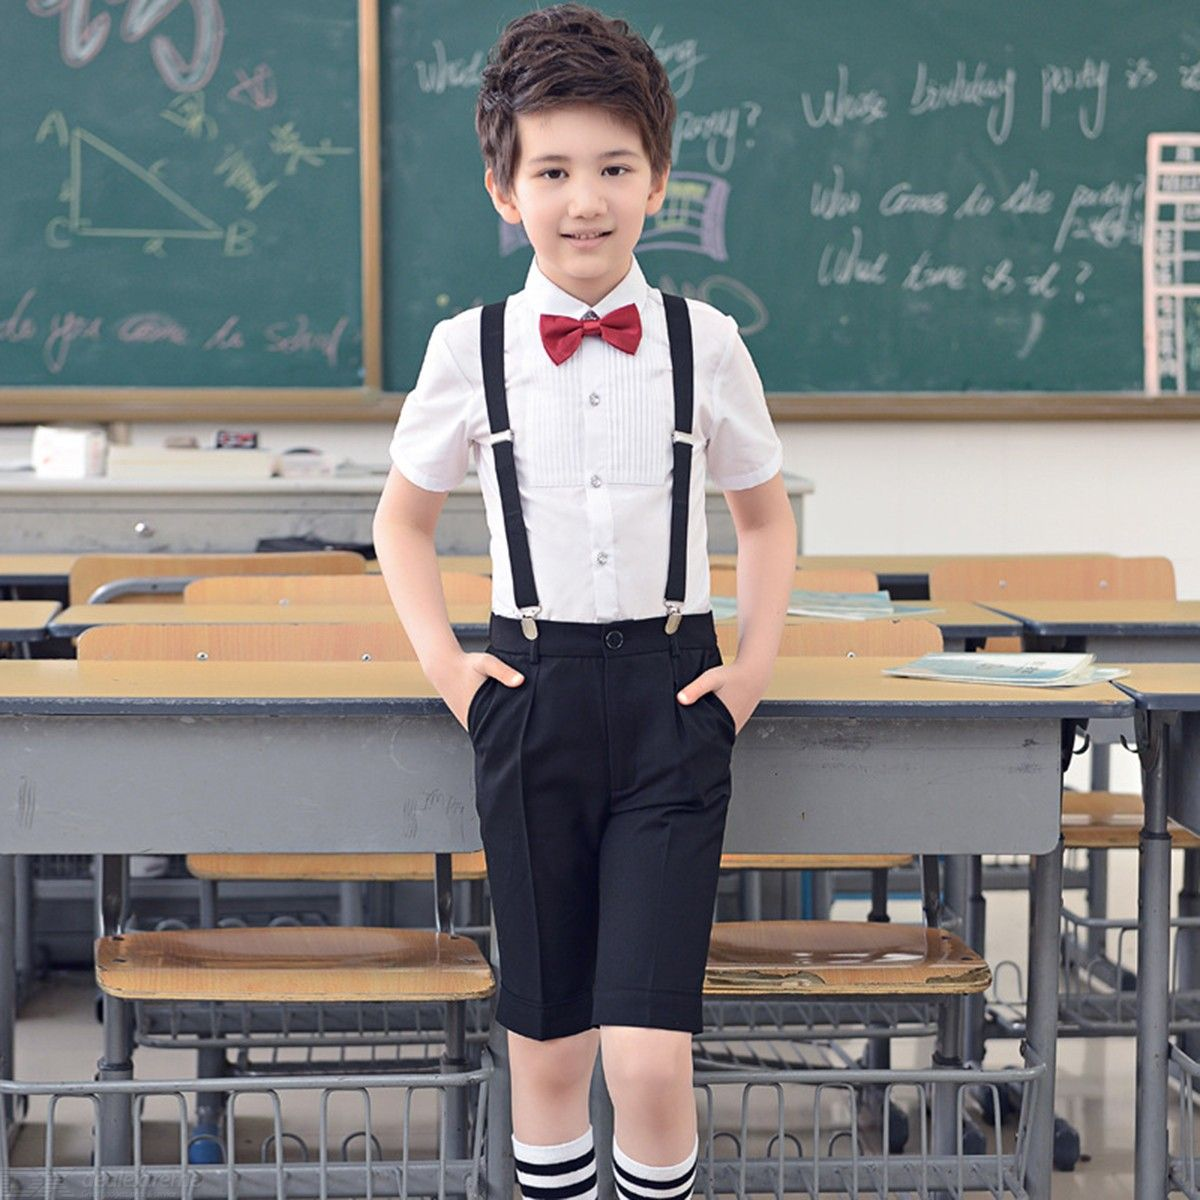 3e6eb162387dc Boys Gentleman Outfits Suits, Short Sleeve Shirt With Bow Tie And Overalls  Pants Uniform Pants For School Birthday More